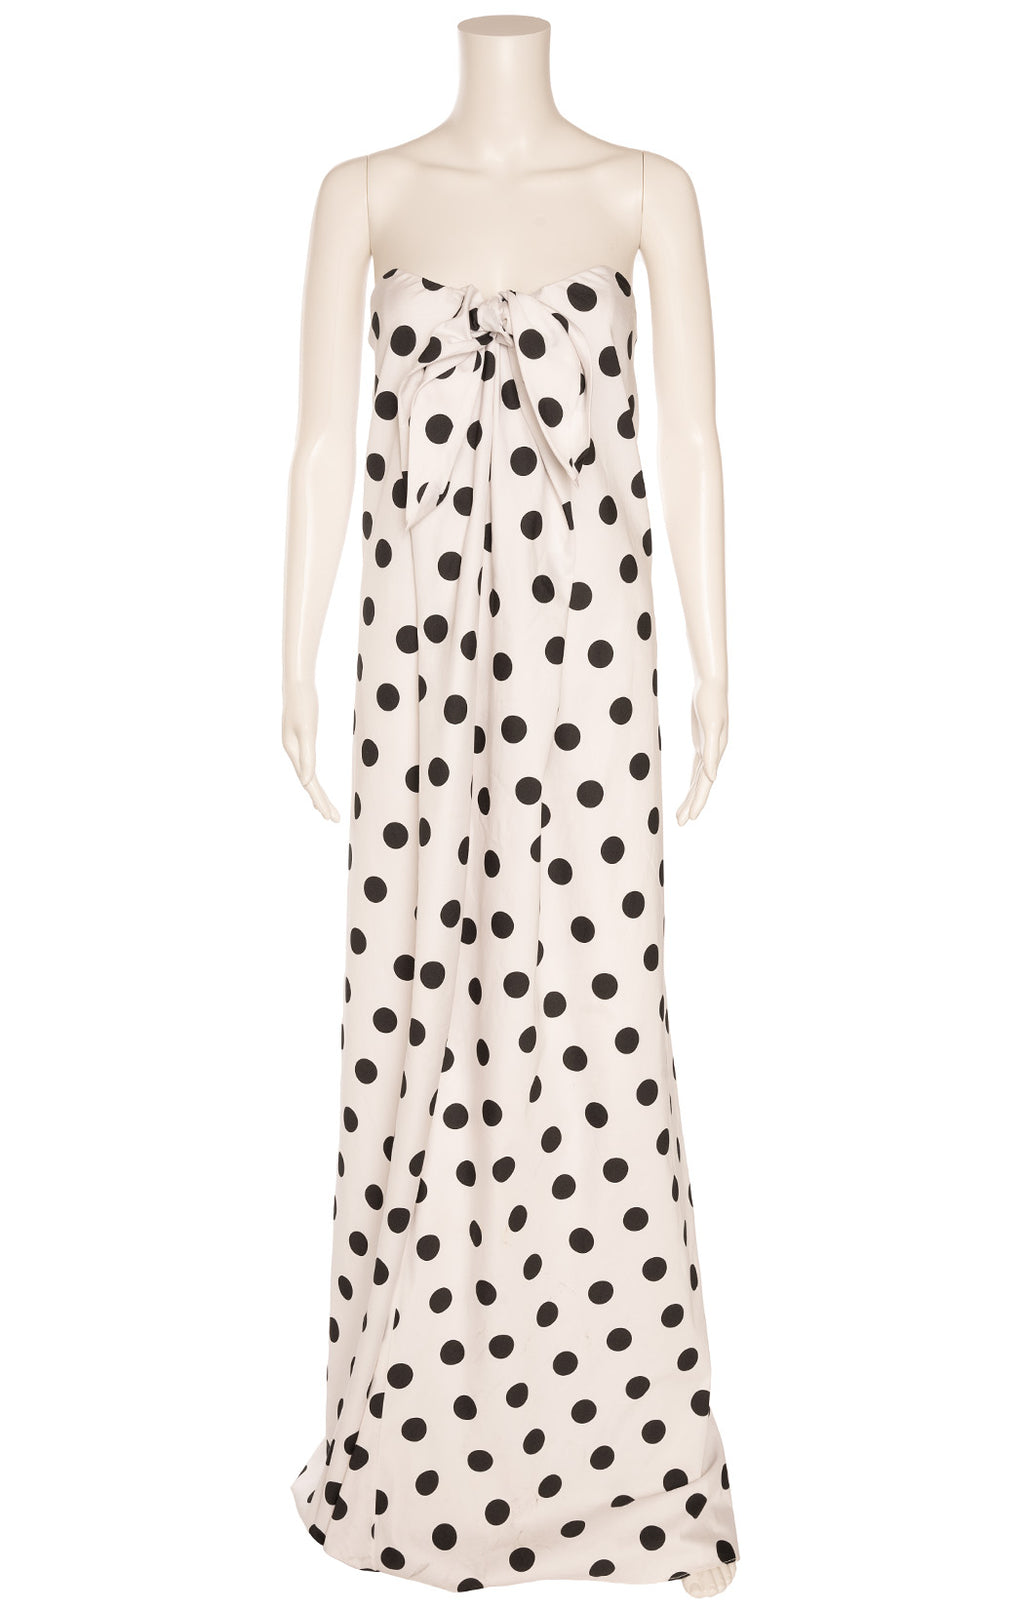 White with black polka dot strapless long dress with underwire bra and back zipper